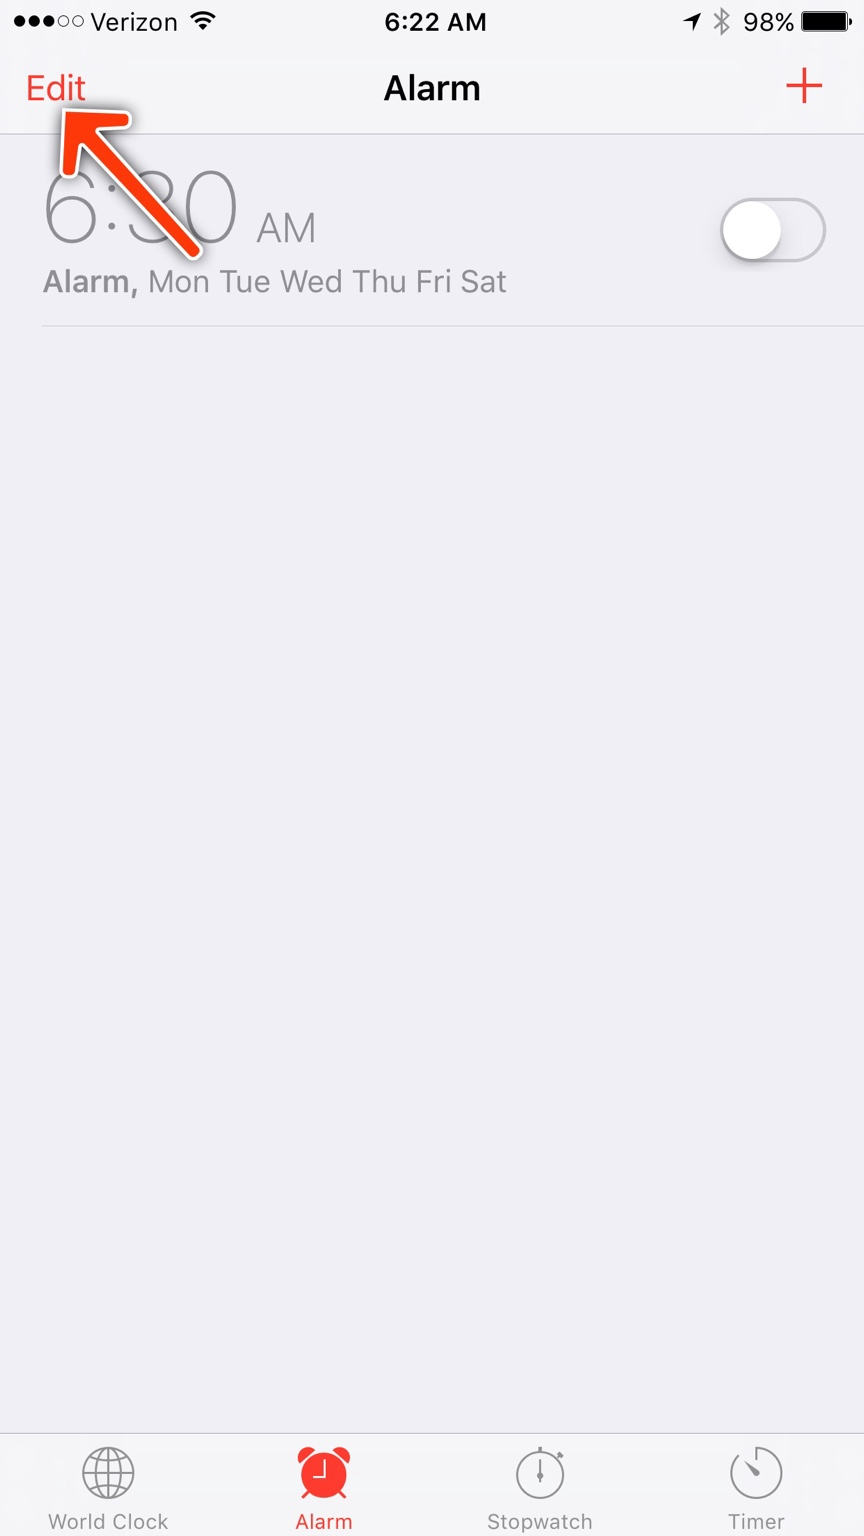 My alarm keeps going off, how do I stop it? - iPhone, iPad